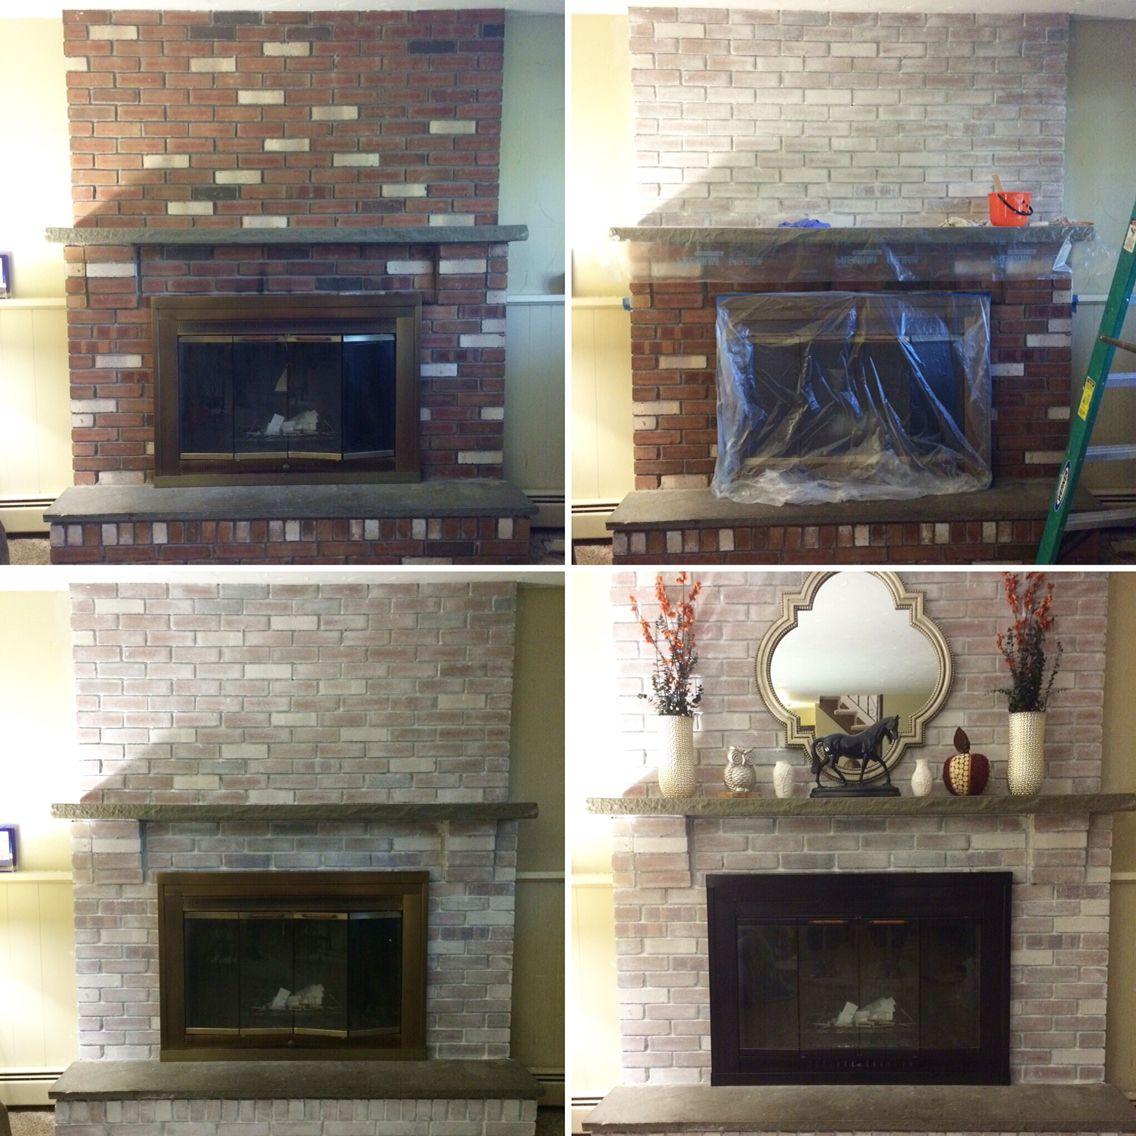 Heat Resistant Paint Fireplace Fireplace Makeover White Wash On The Brick And Heat Resistant